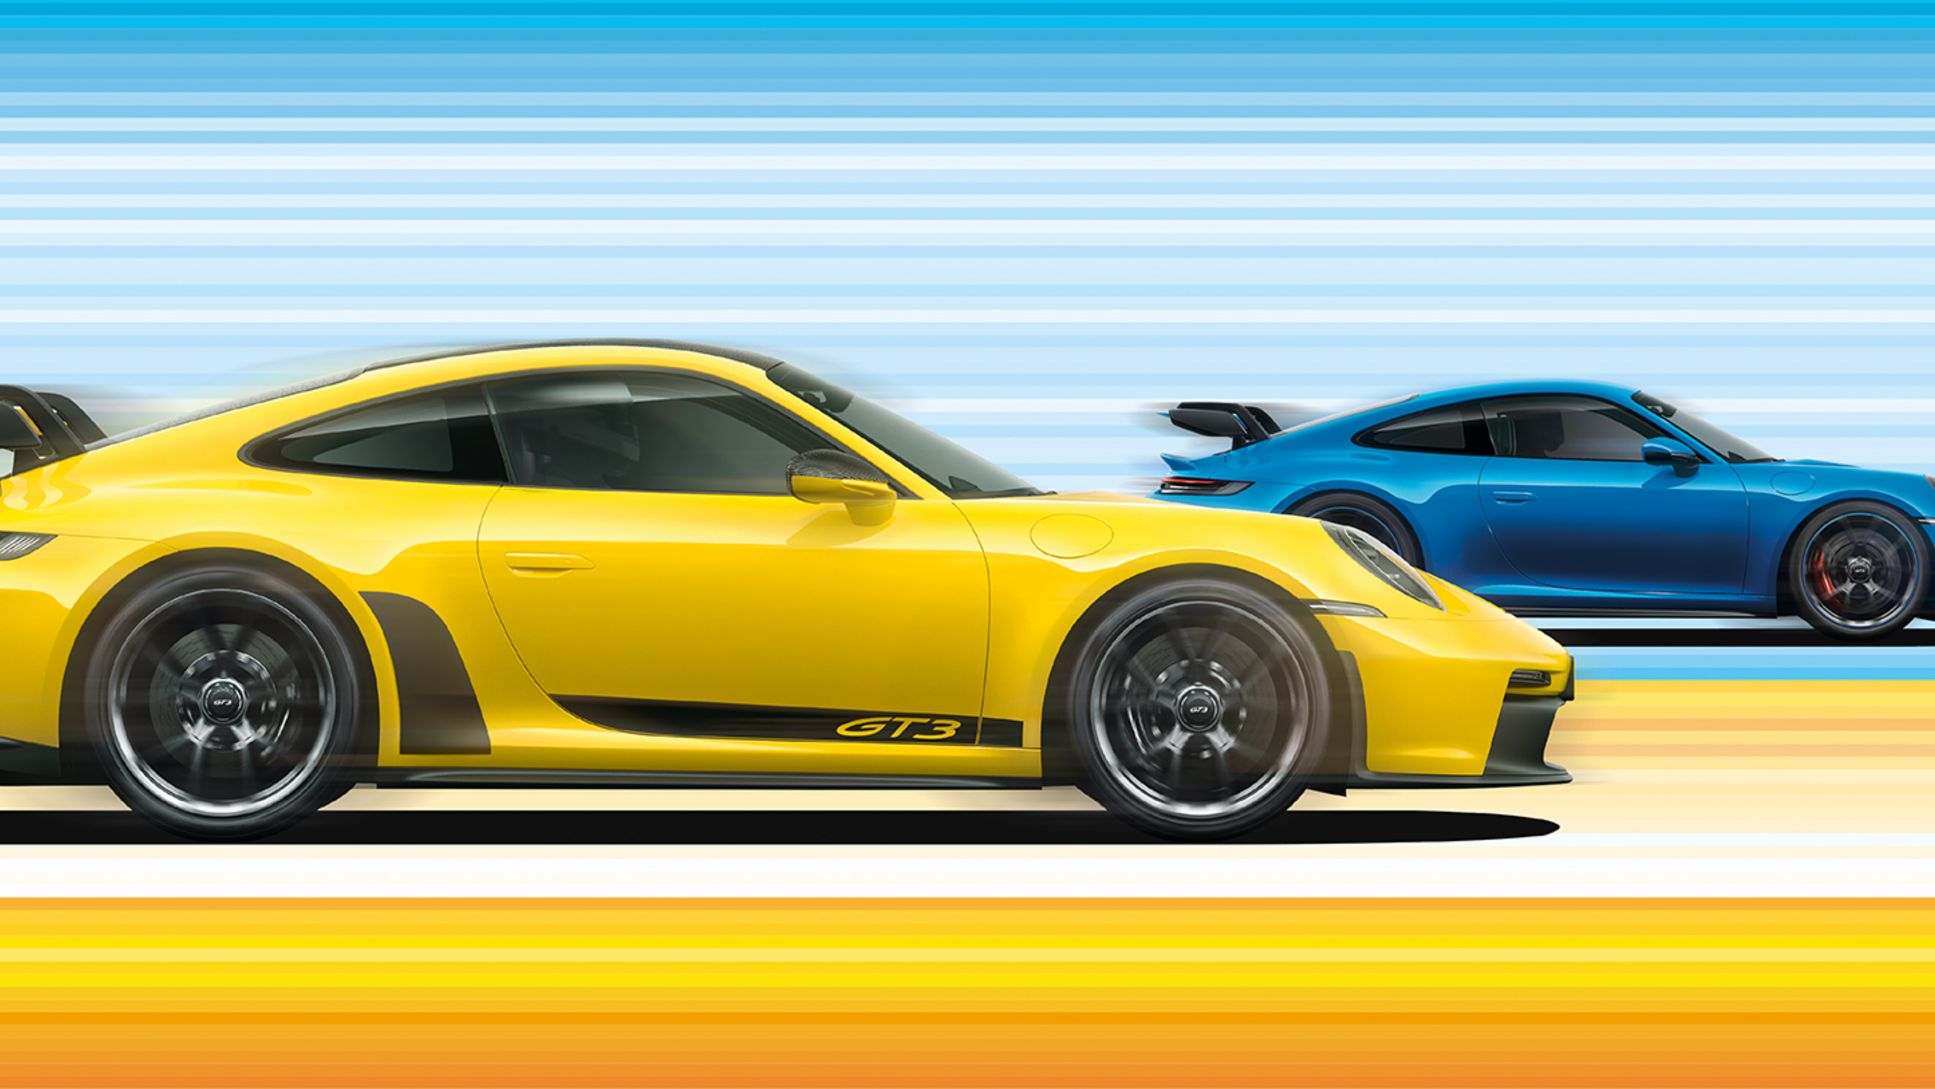 The 911 GT3: from racing car straight to series production mode - Image 6